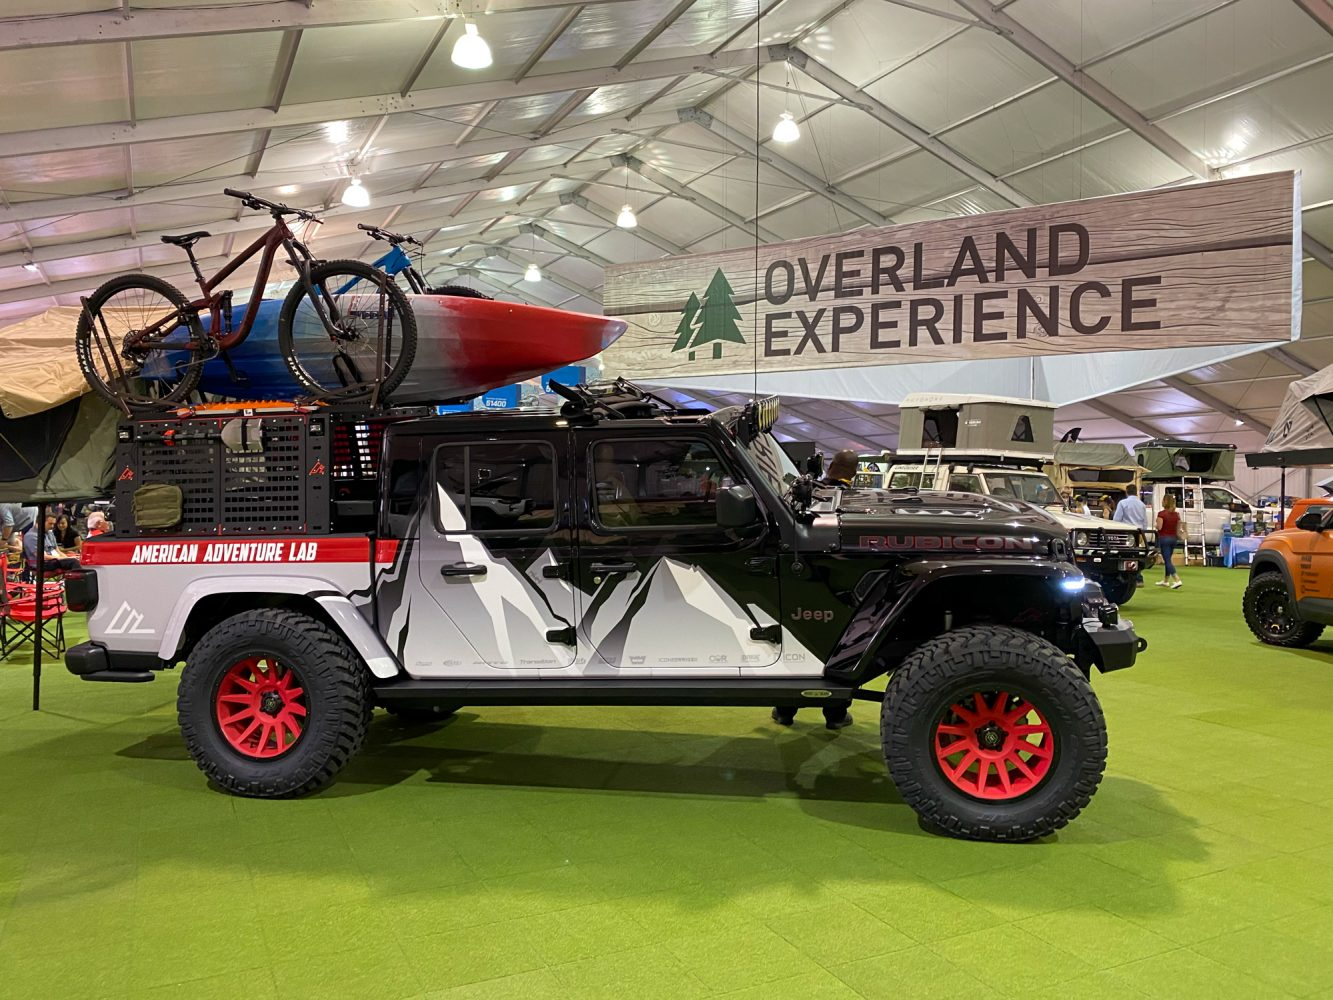 SEMA Show Day 1 :: The Overland Experience Area